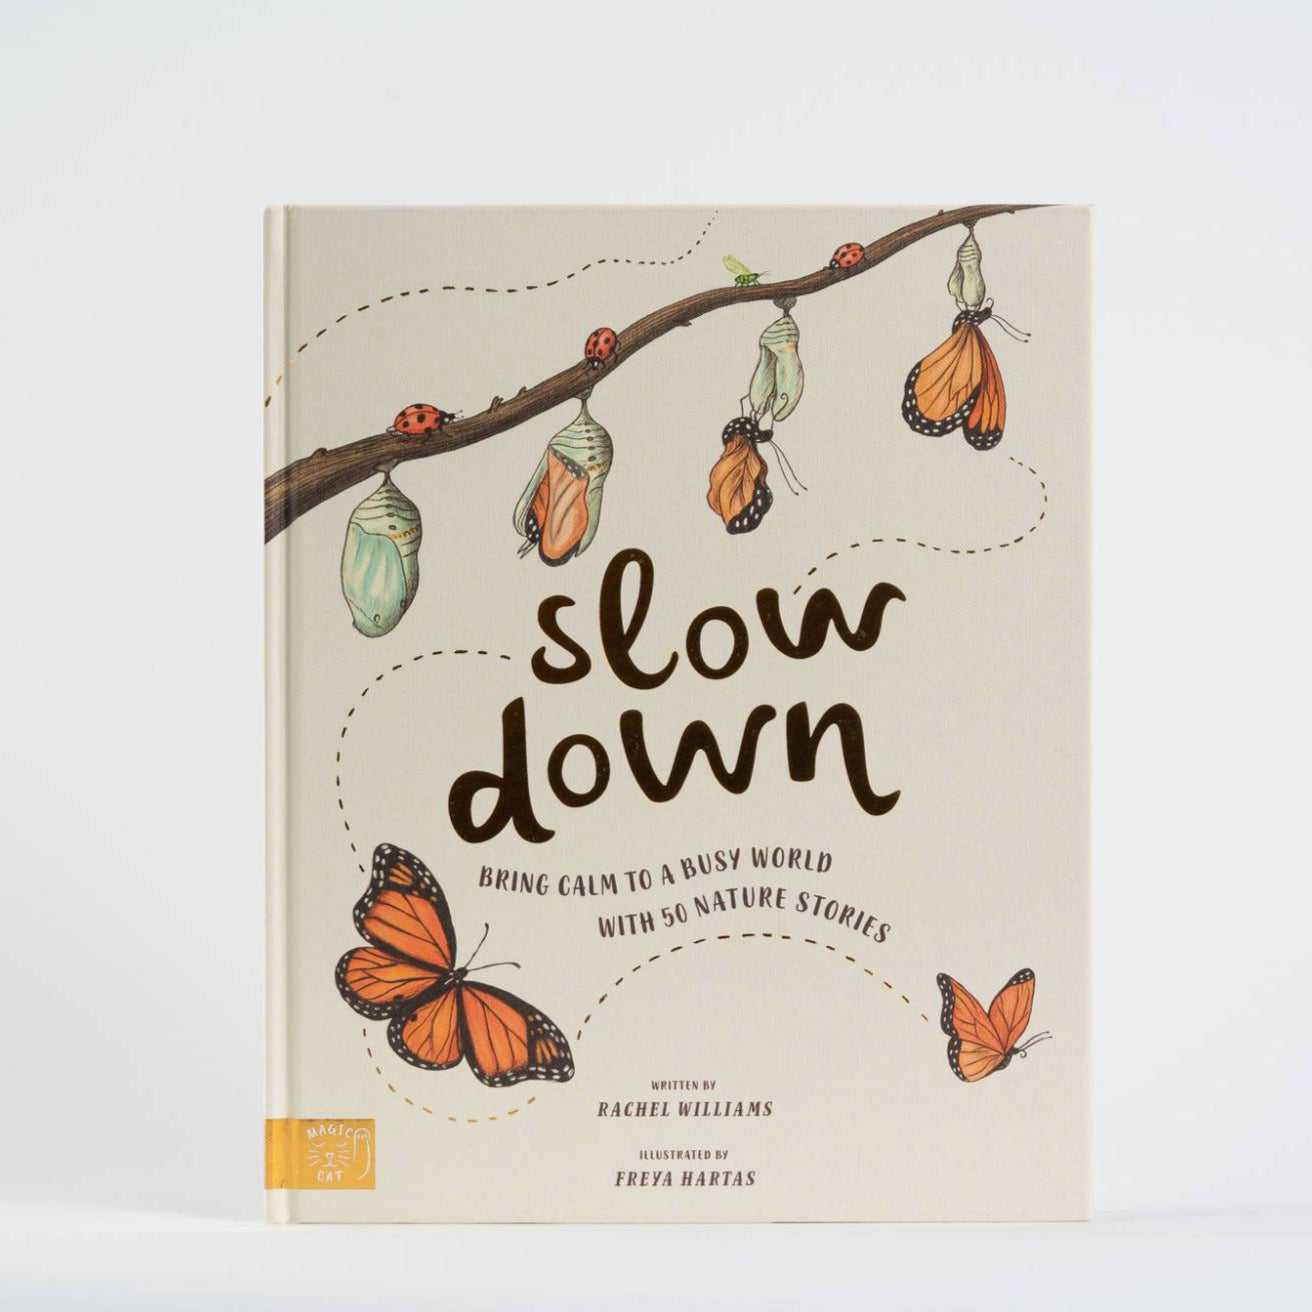 Slow Down | Bring Calm to a Busy World with 50 Nature Stories